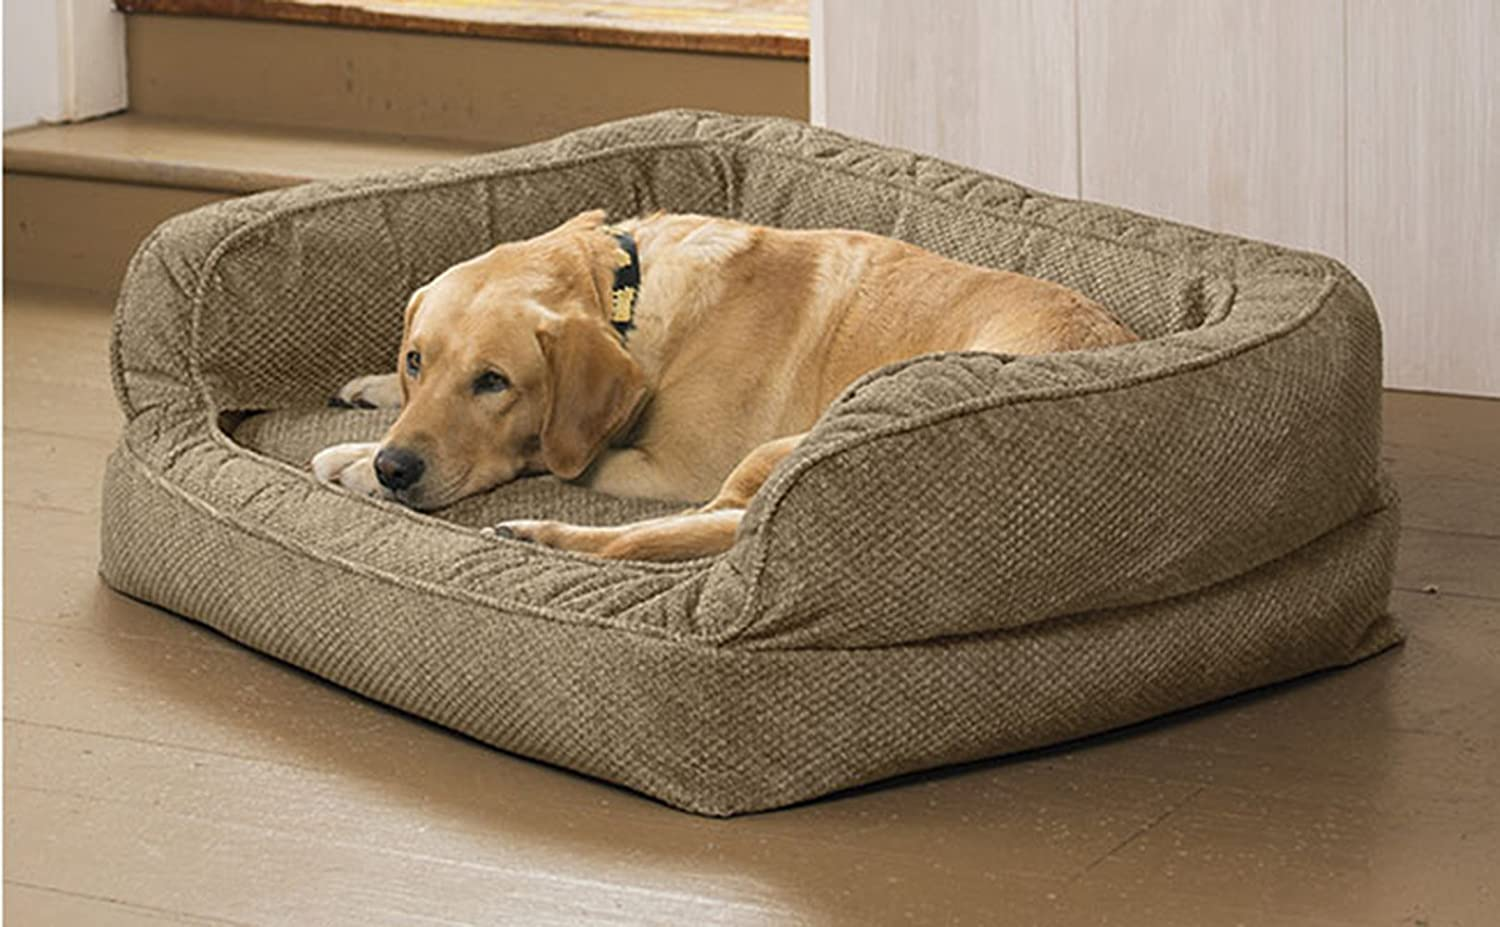 80 Off Orvis Deep Dish Couch Dog Bed With Memory Foam Medium Dogs Up To 40 60 Lbs Brown